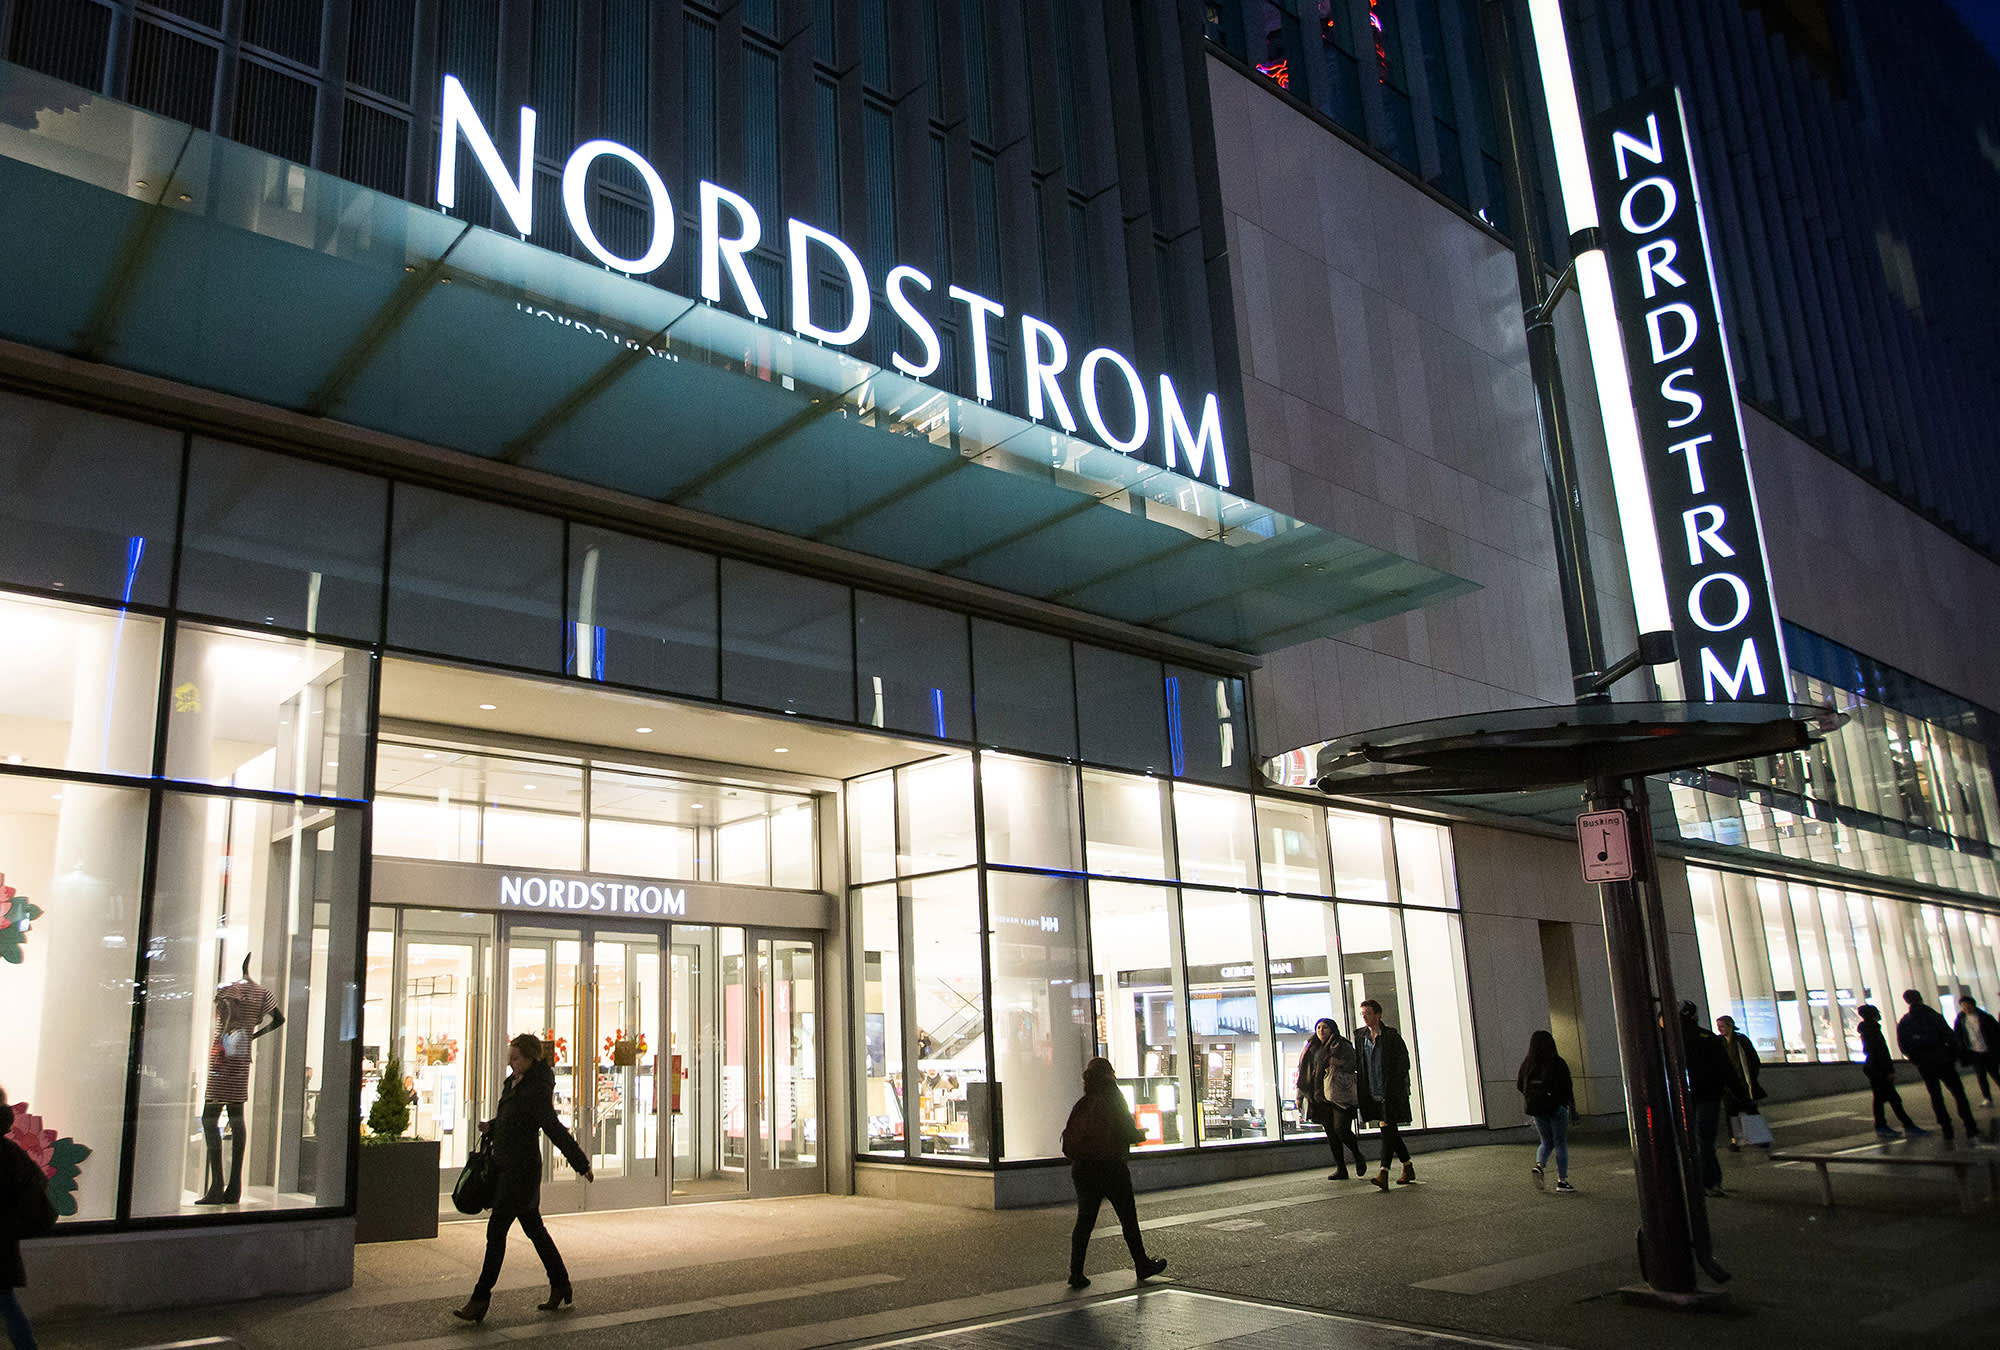 Nordstrom shares jump after delivering strong profit, even as sales weaken in fiscal second quarter